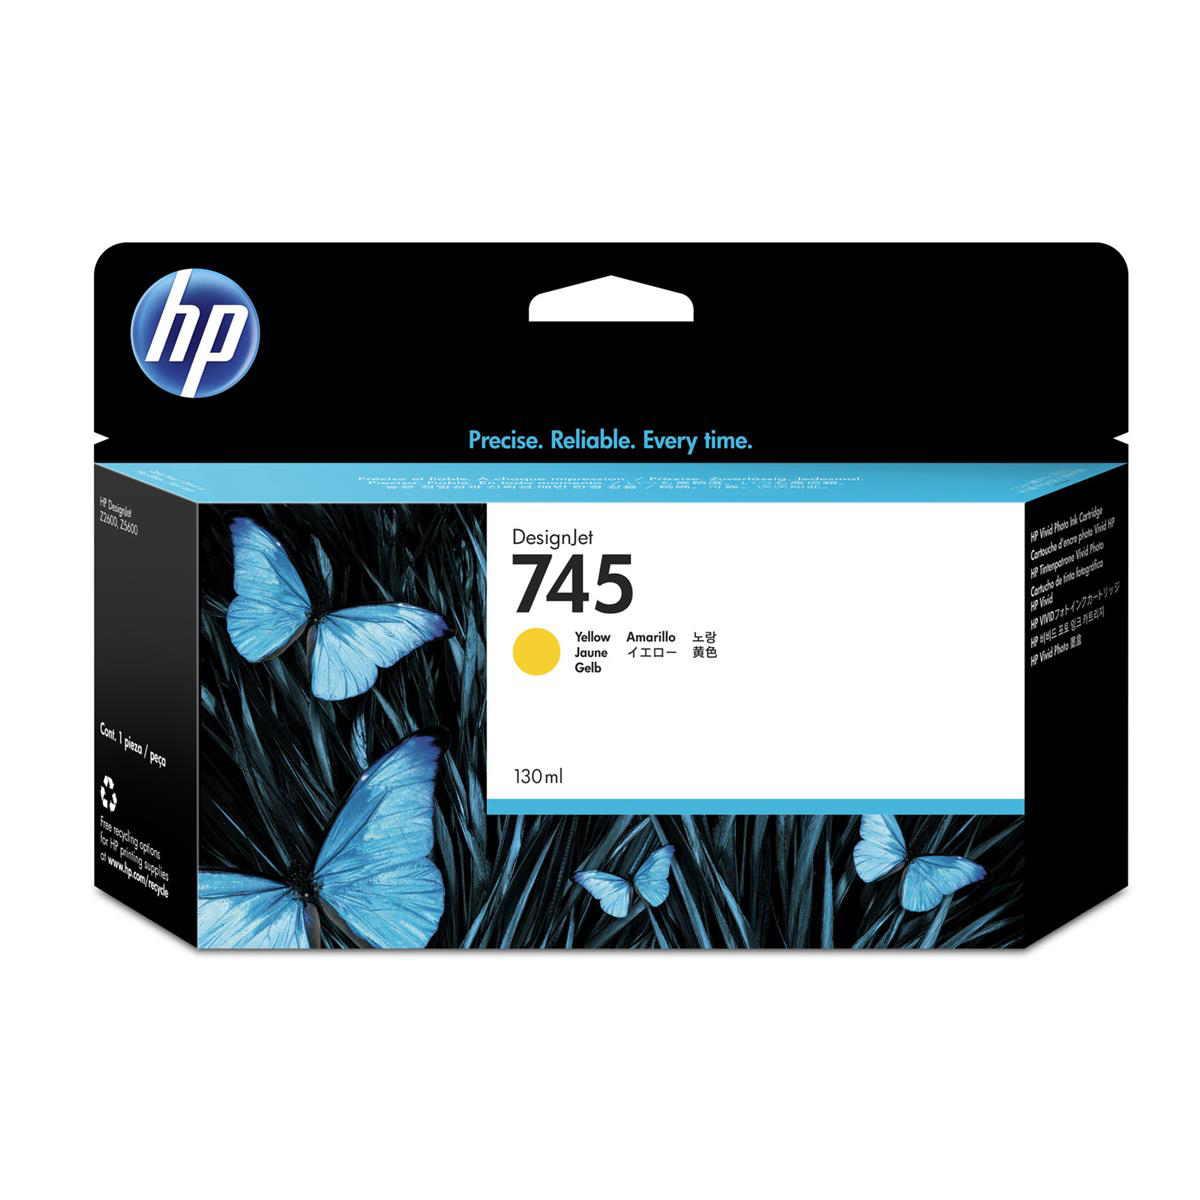 HP 745 130ml DesignJet Yellow Ink Cartridge F9J96A *3 to 5 Day Leadtime*